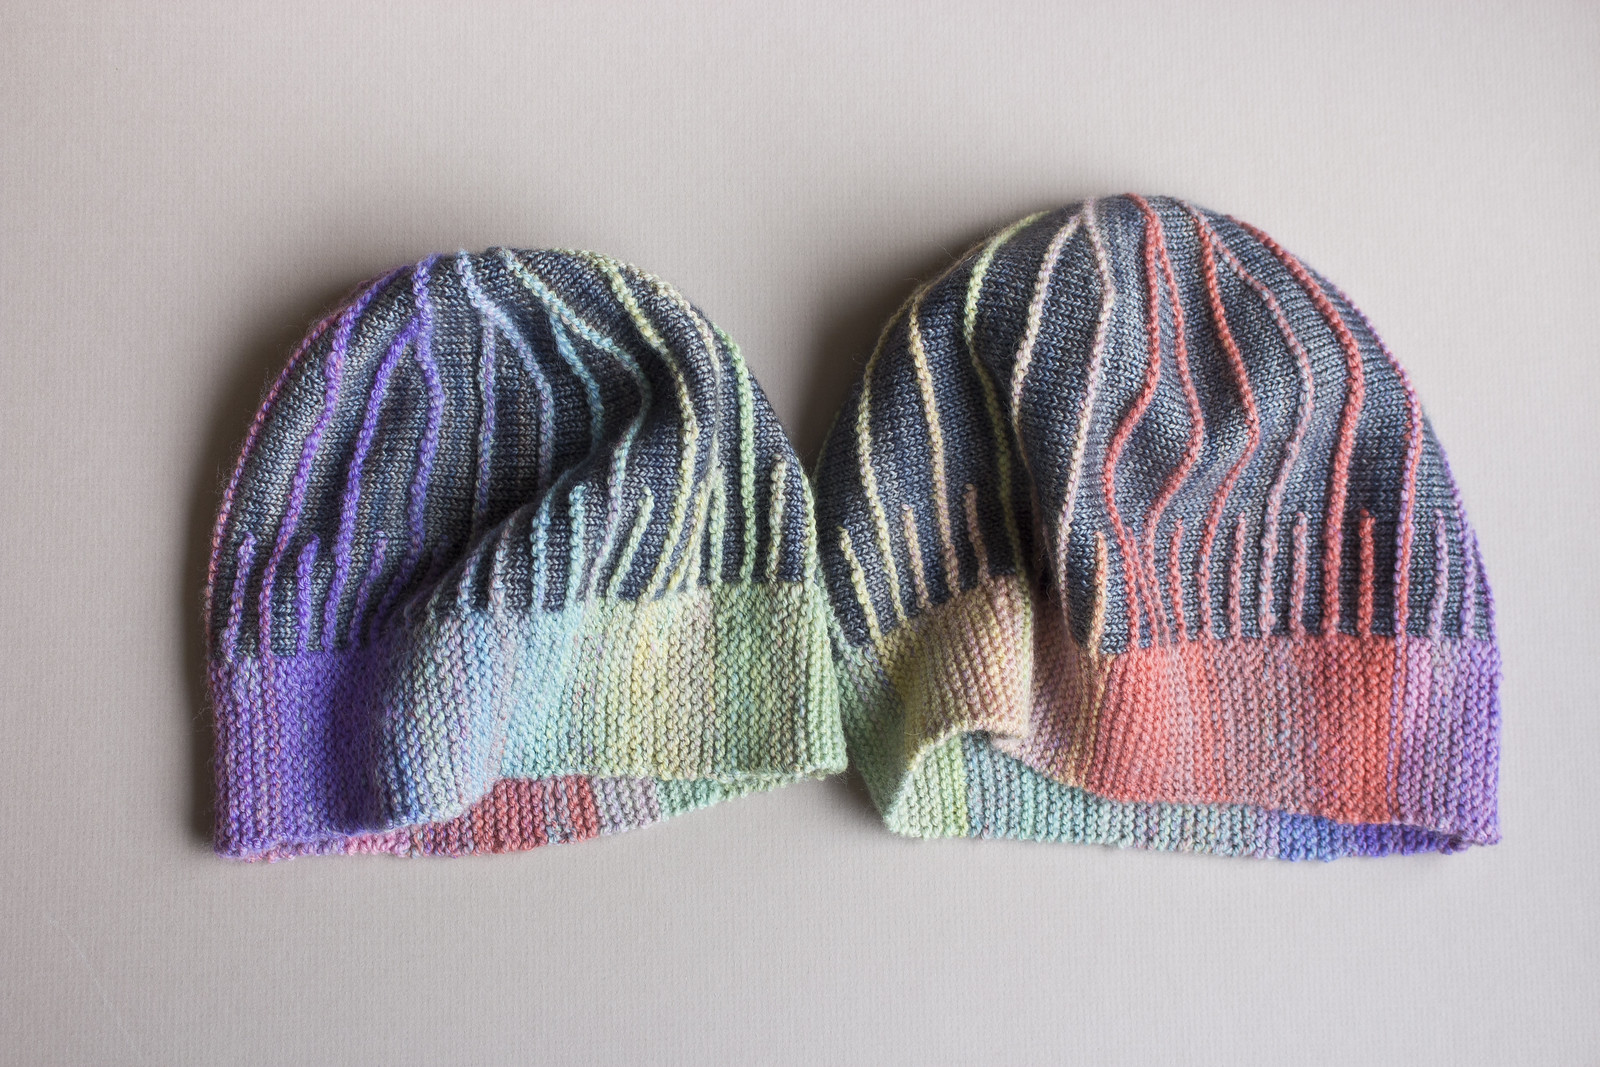 Two misura hats for toddler and adult knit from pastel handspun yarn with grey contrast